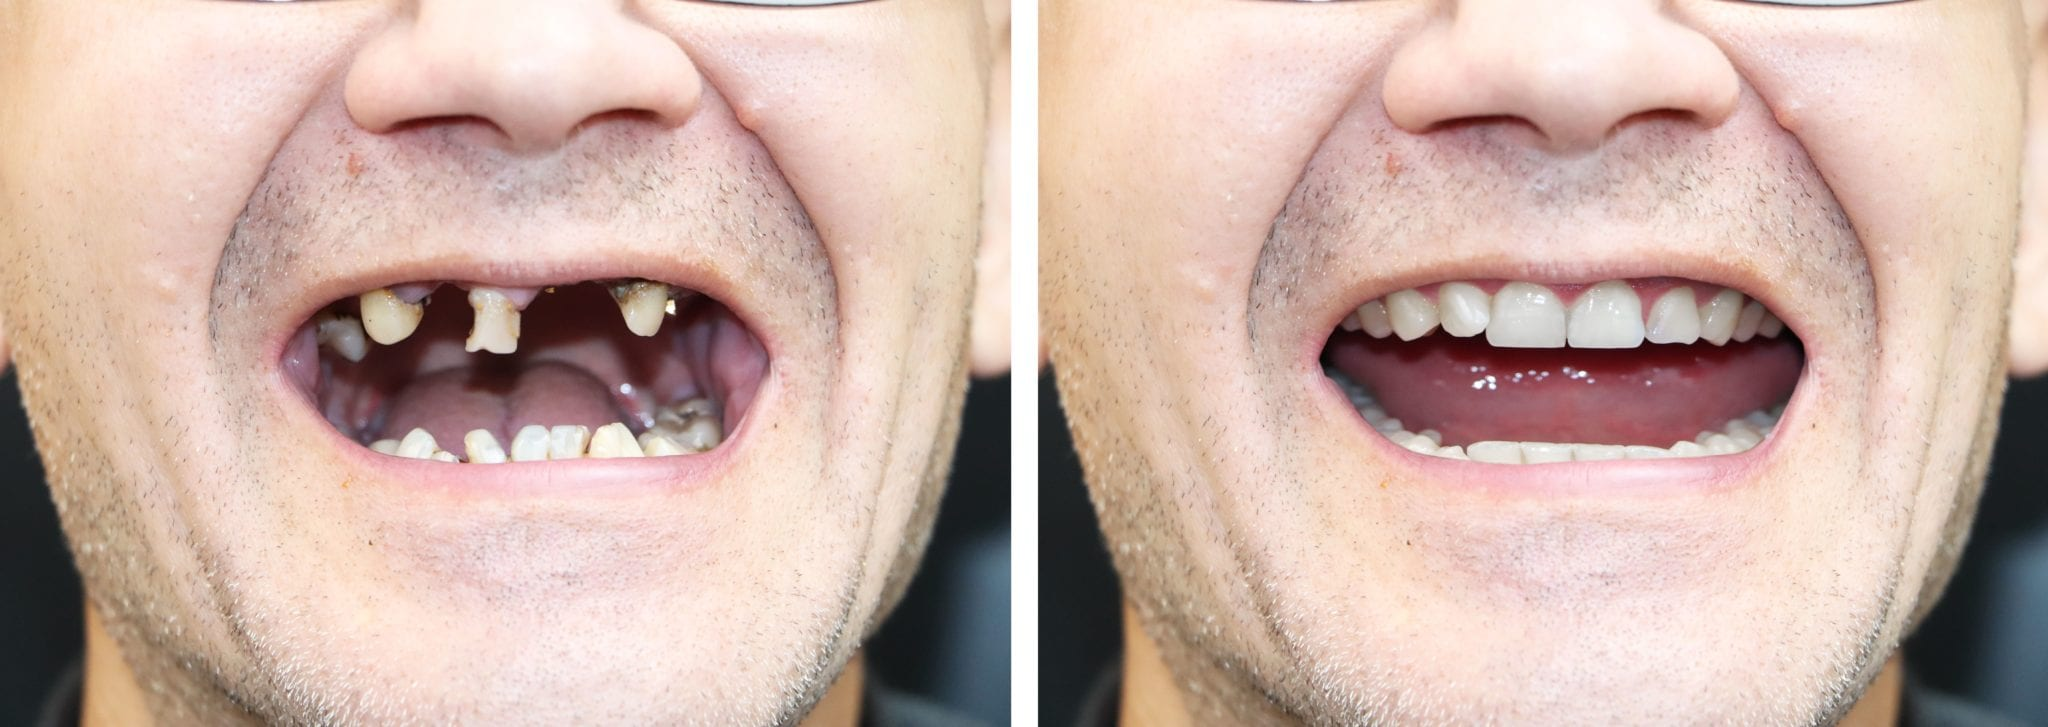 Before and after of a full mouth reconstruction